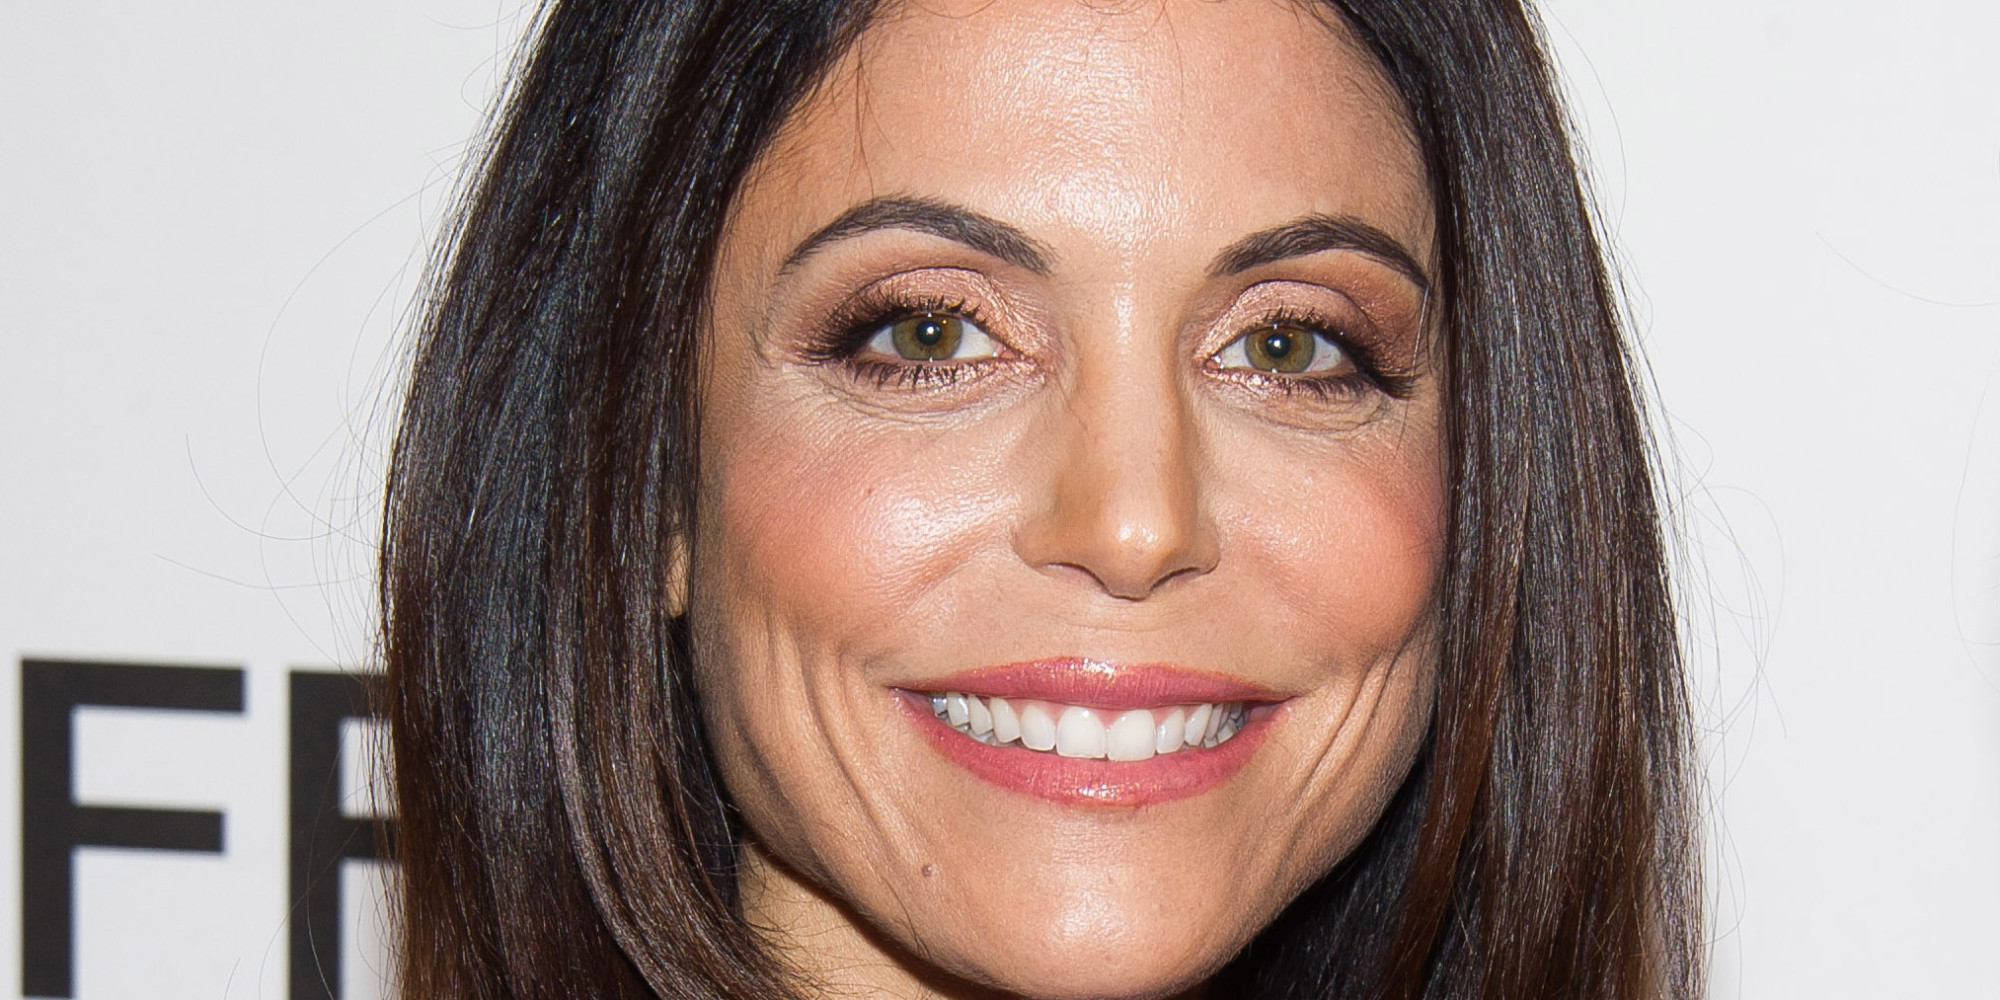 bethenny frankel booksbethenny frankel contact, bethenny frankel net worth, bethenny frankel imdb, bethenny frankel peter sussman, bethenny frankel first marriage, bethenny frankel instagram, bethenny frankel talk show, bethenny frankel leather pants, bethenny frankel height, bethenny frankel photos, bethenny frankel books, bethenny frankel twitter, bethenny frankel diet, bethenny frankel recipes, bethenny frankel mother, bethenny frankel net worth 2015, bethenny frankel and eric stonestreet, bethenny frankel boyfriend, bethenny frankel haircut, bethenny frankel apartment